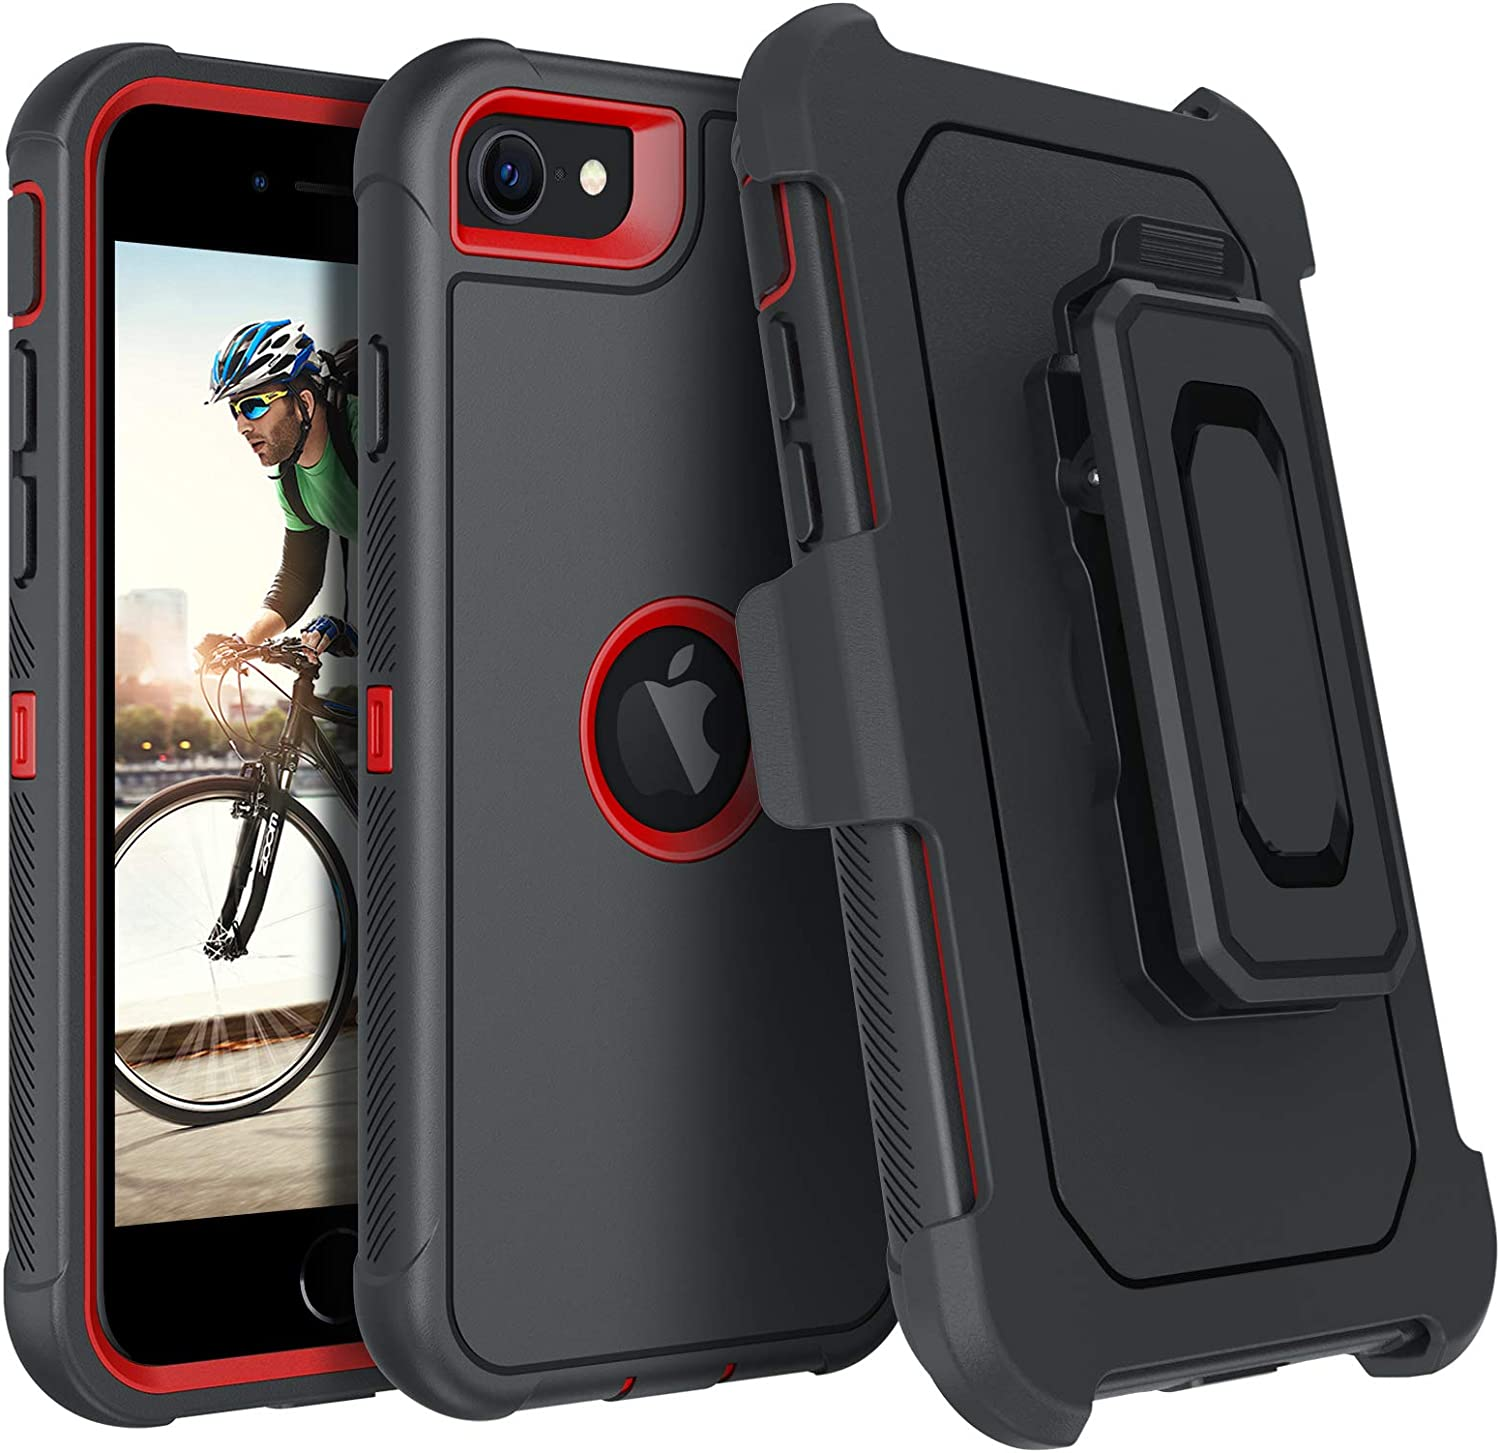 DUEDUE iPhone SE 2020 Case, Military Grade Heavy Duty Drop Protection Shockproof Full Body Rugged Cover with Kickstand Belt Clip Holster for iPhone SE 2nd Generation, Red/Black